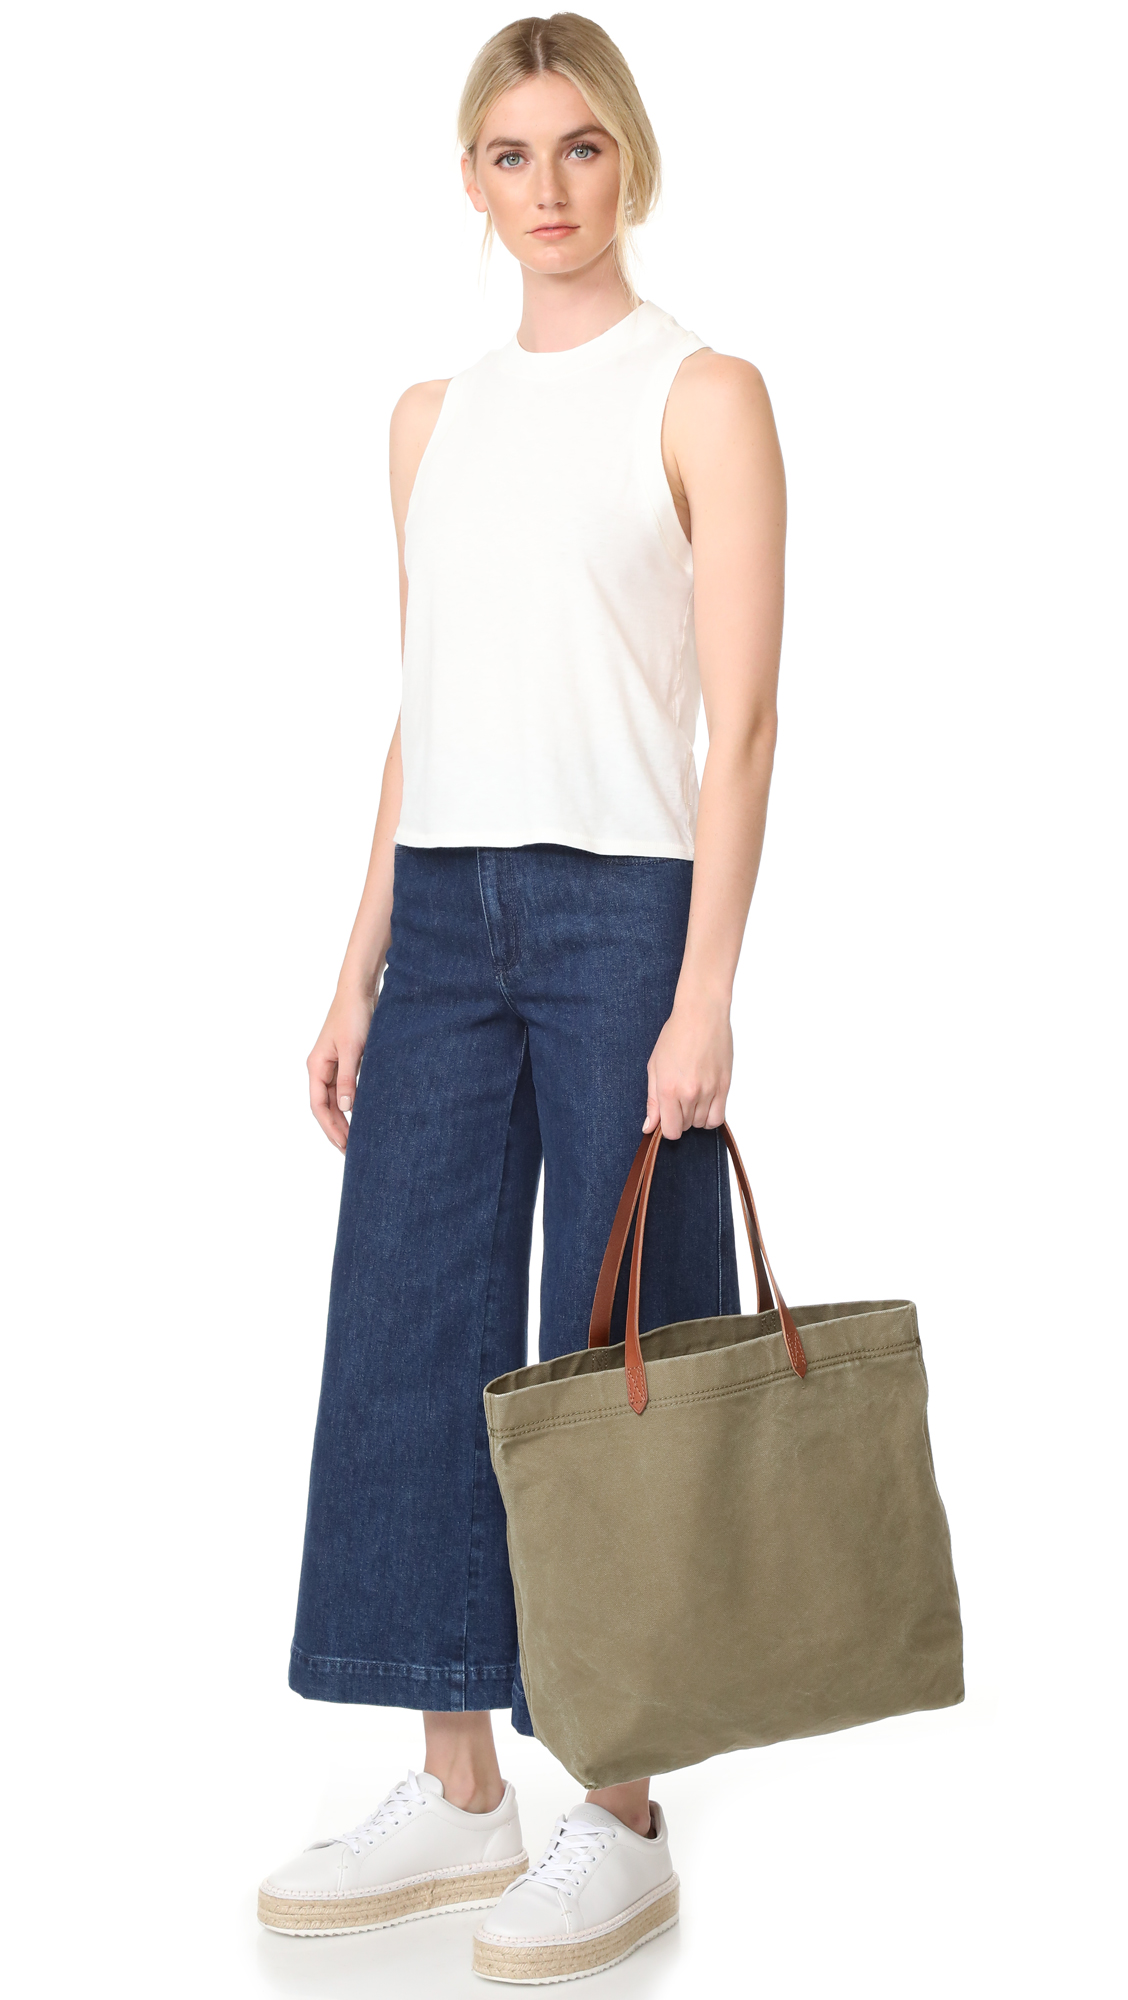 543f30210 Madewell Canvas Transport Tote | SHOPBOP